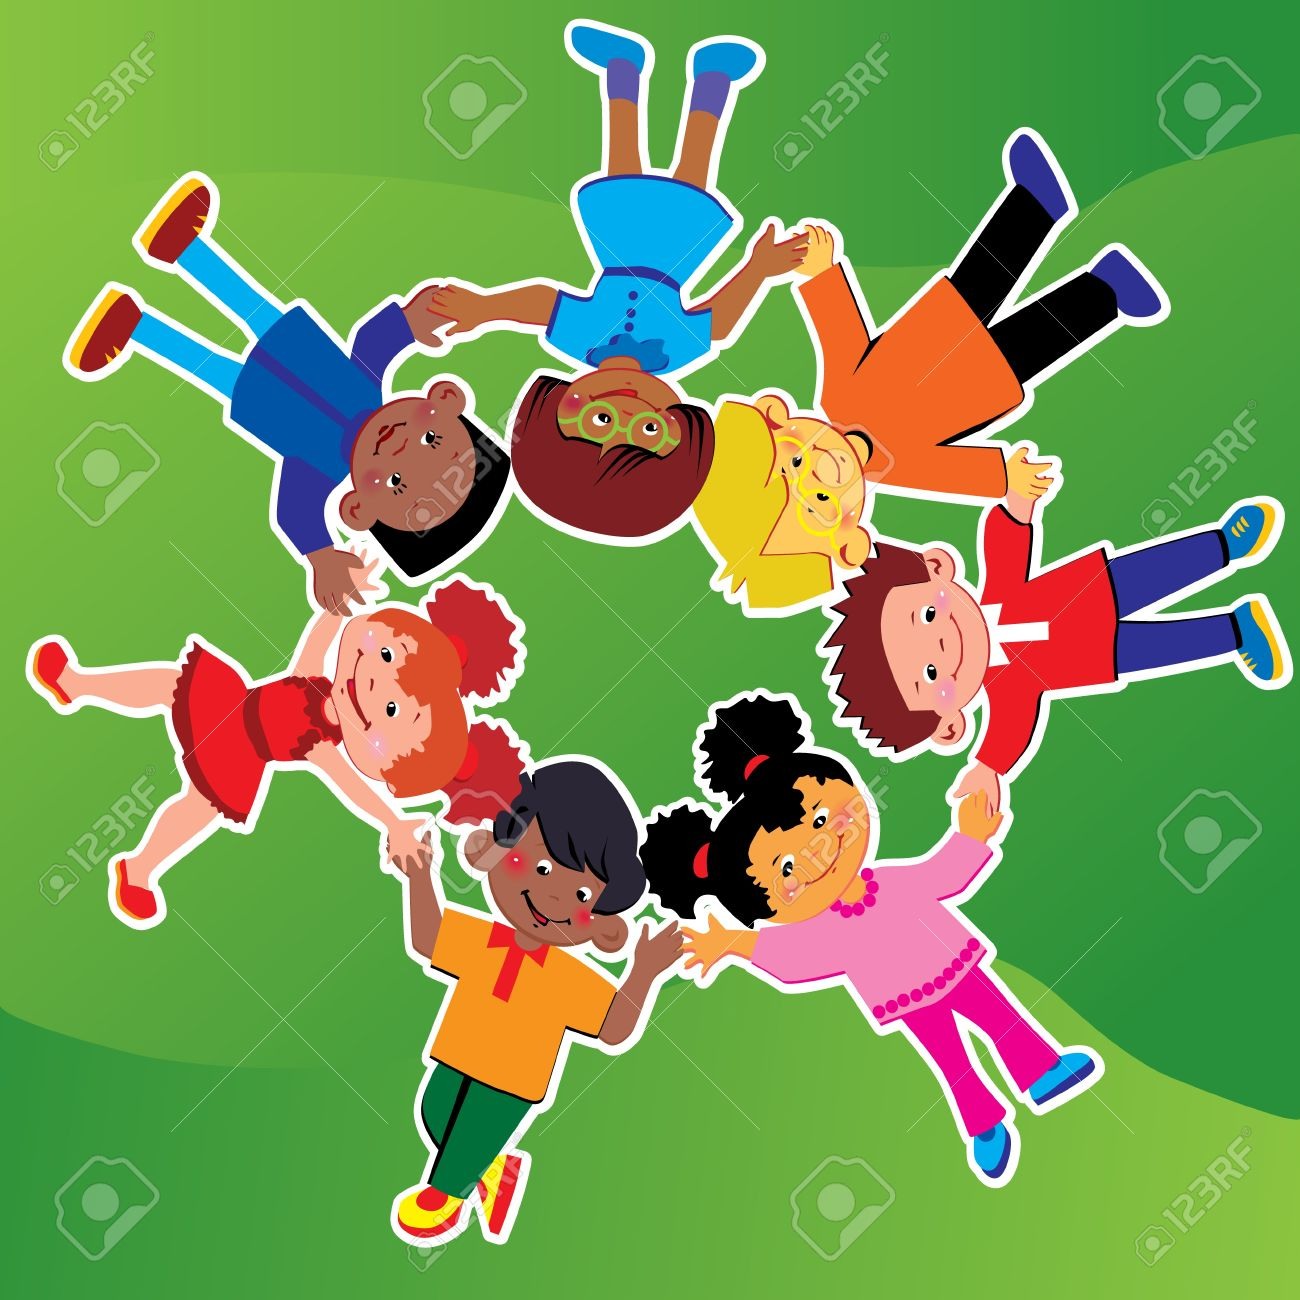 Happy kids of different nationalities play together on the grass Stock Vector - 15337851